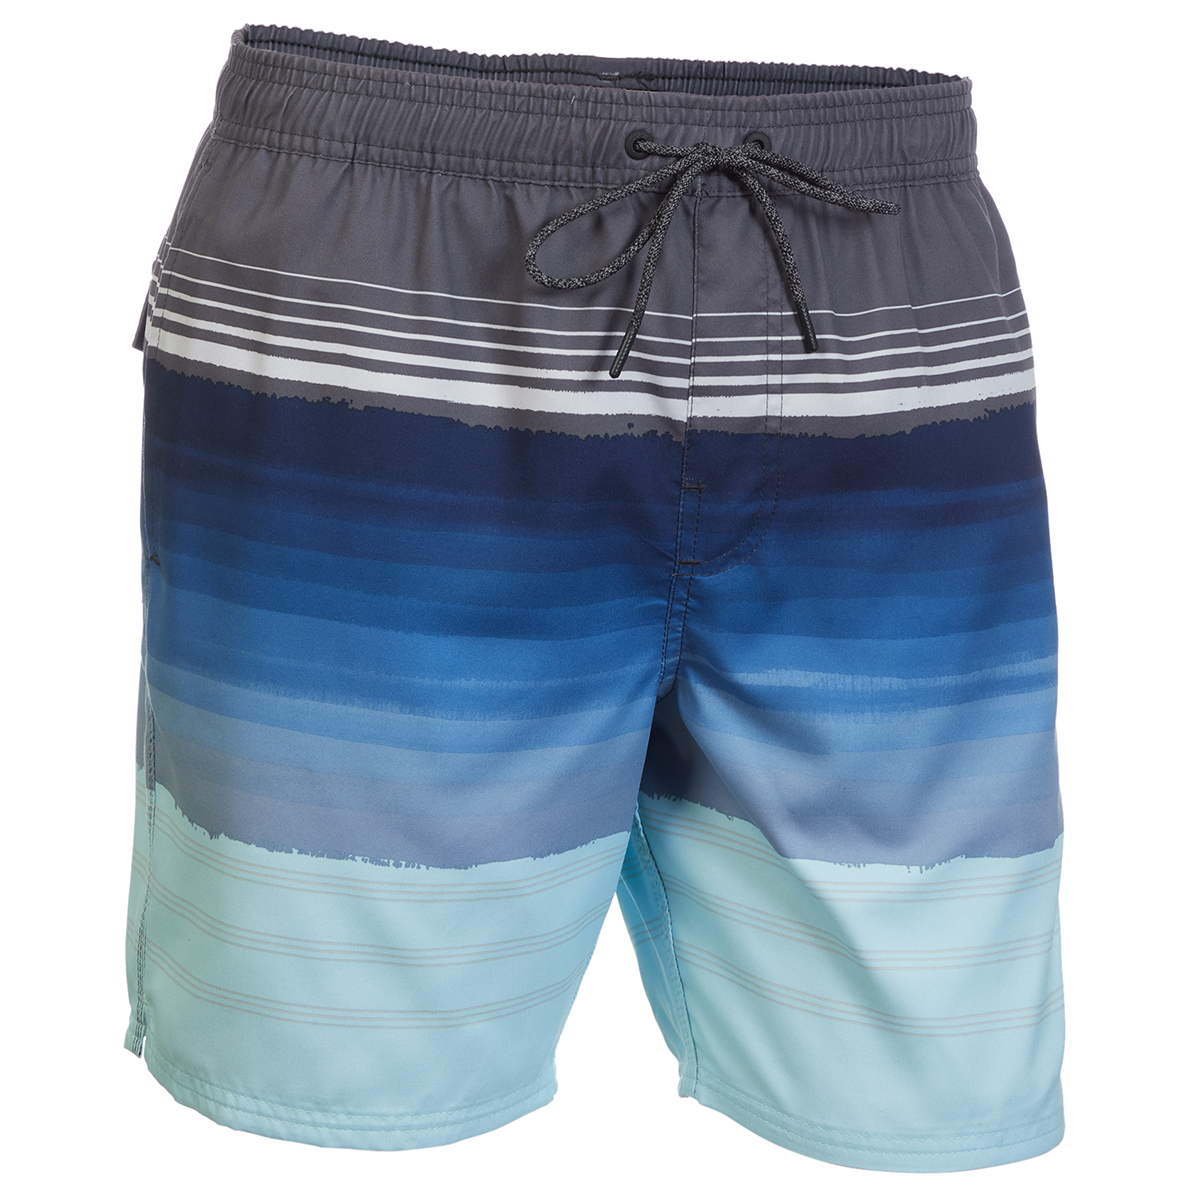 "O'neill Men's Timeless Volley 17"" Board Shorts - Blue, XL"